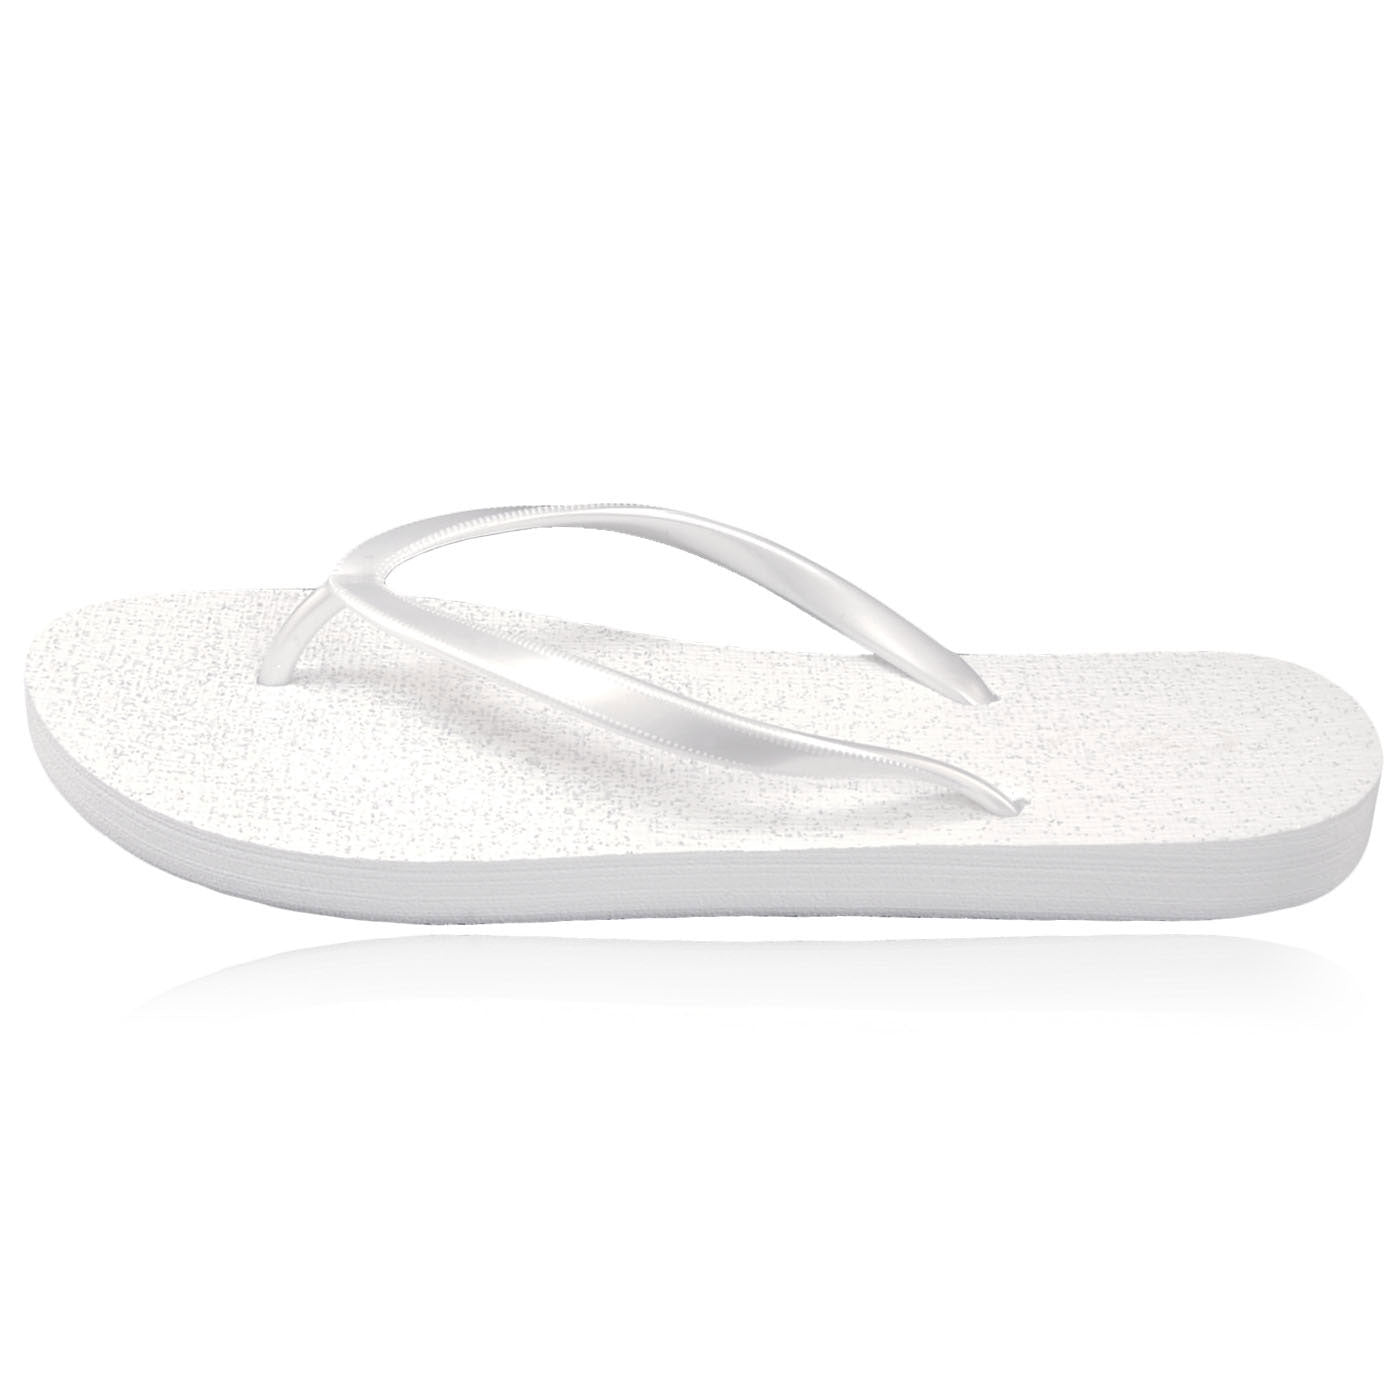 10 Pairs of white glitter flip-flops in a Party box